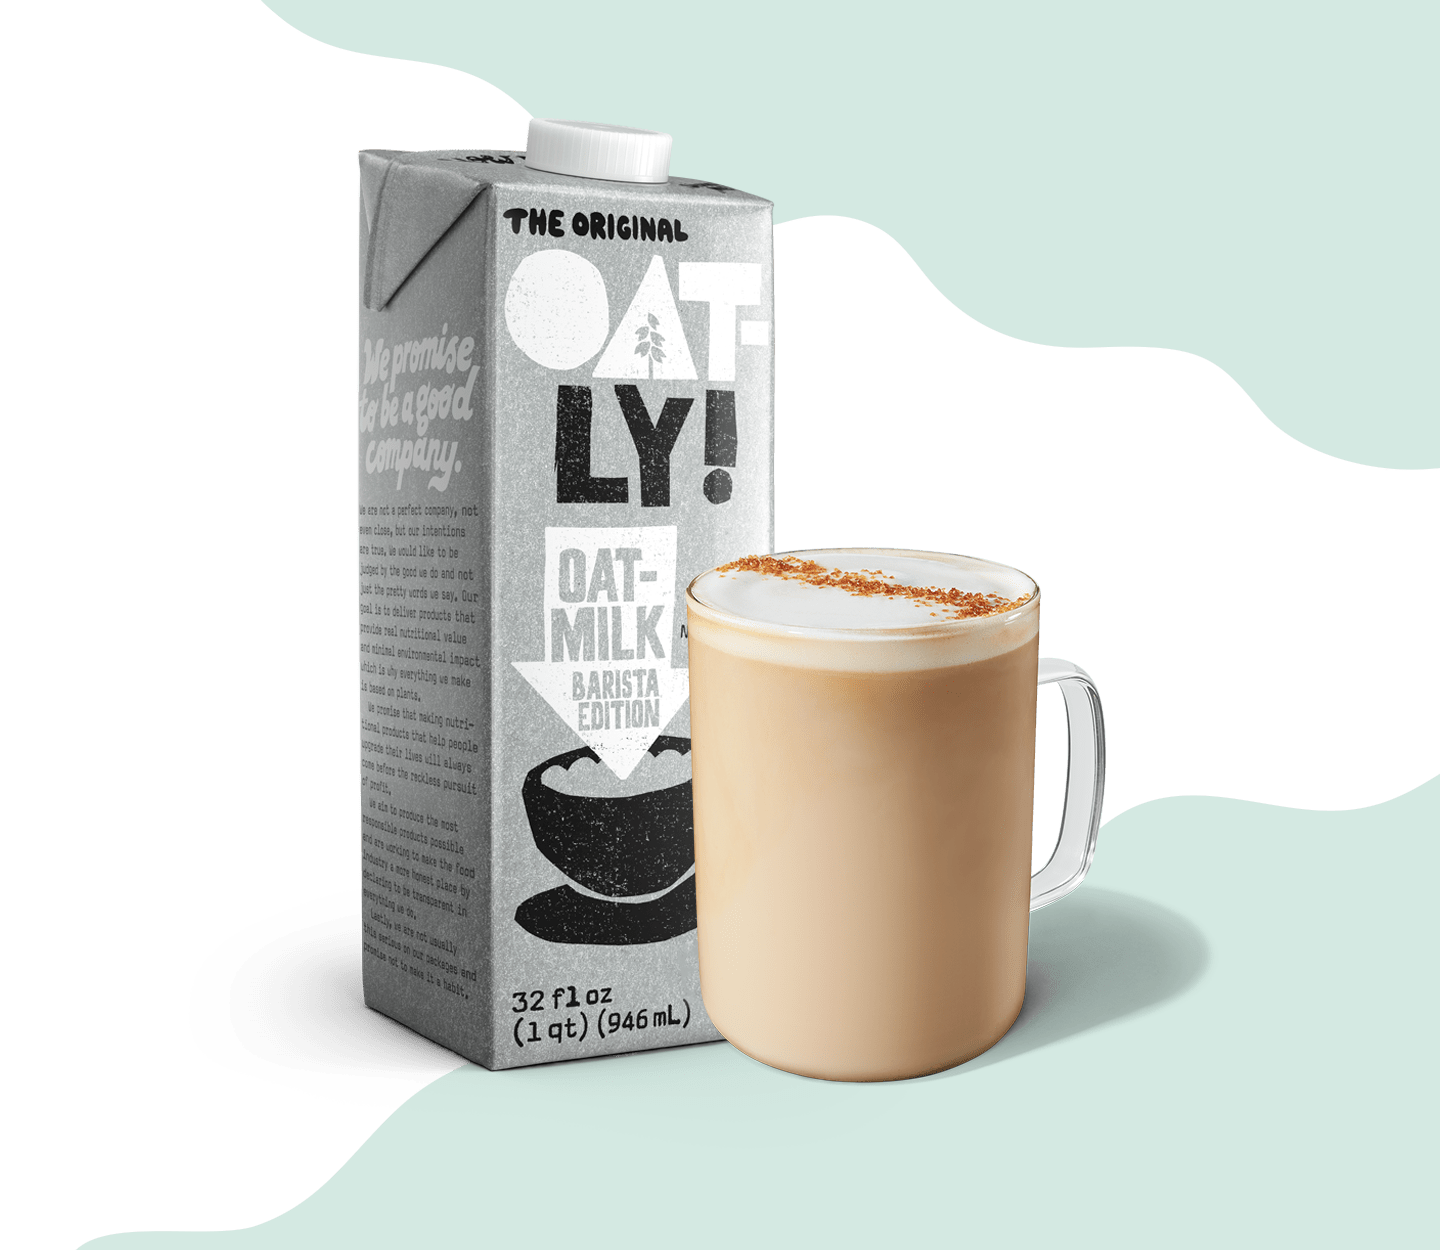 A carton of OATLY Oatmilk sits next to a finished latte in a glass mug.